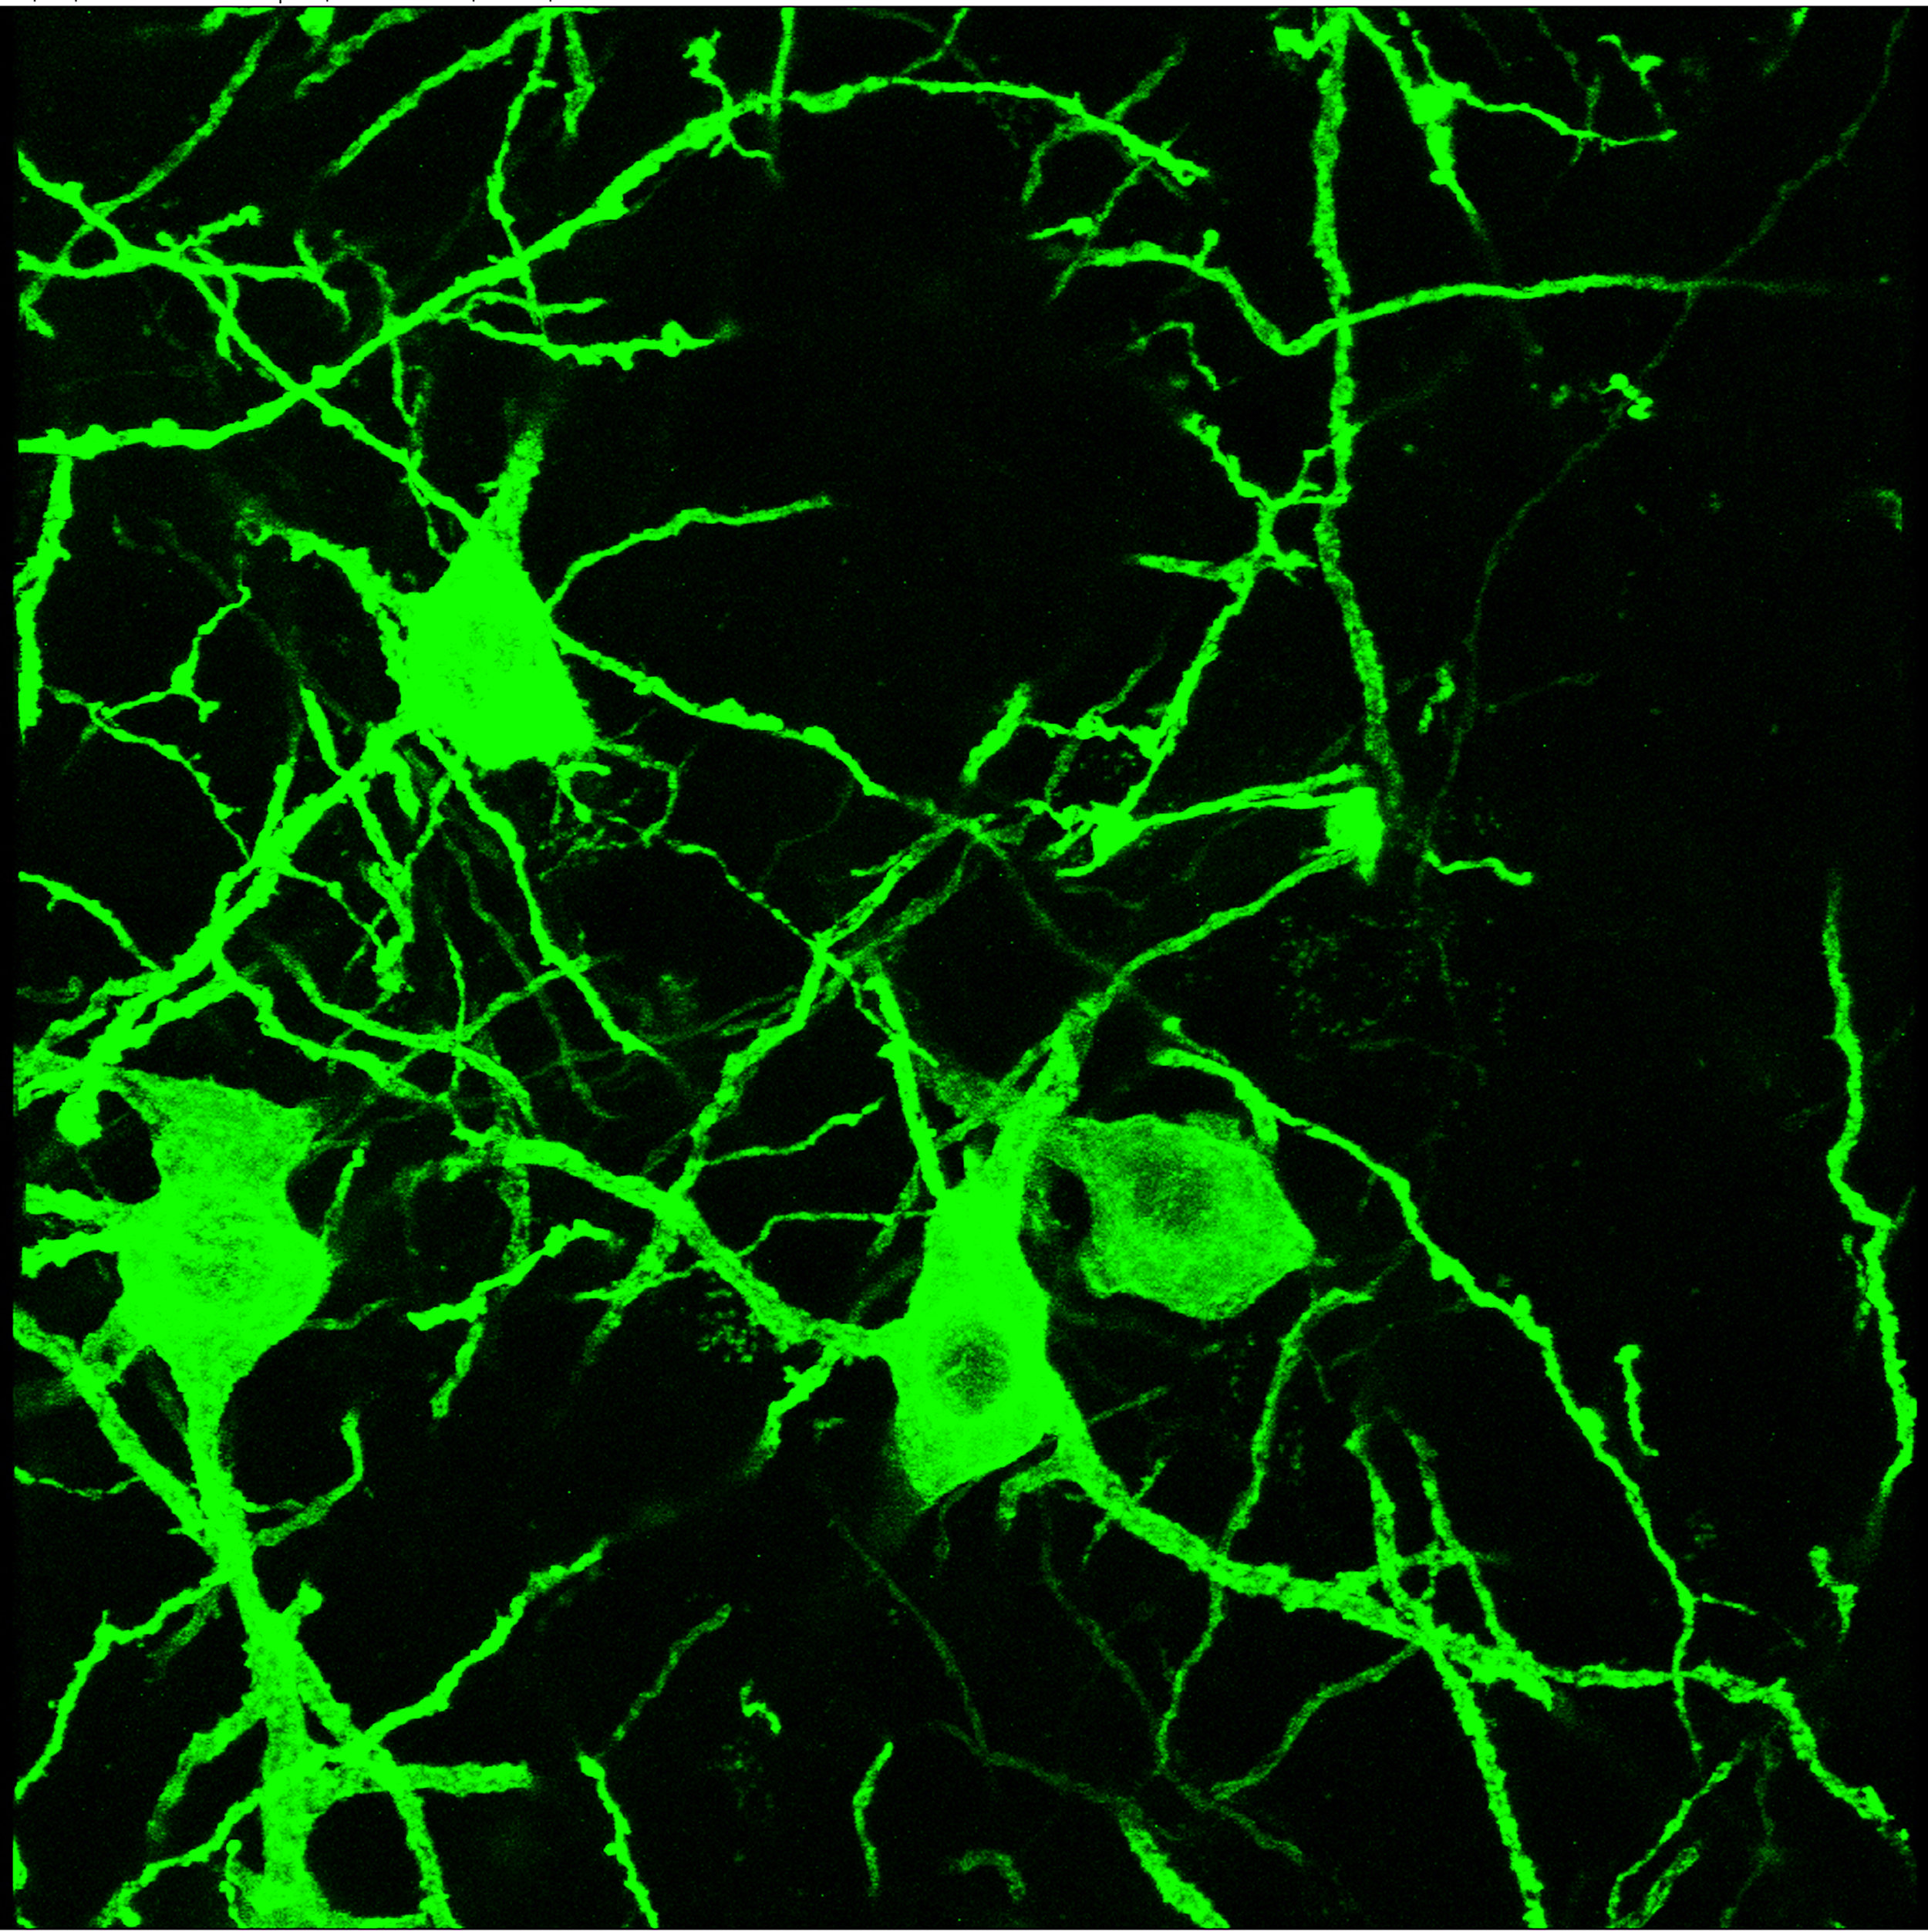 Midbrain neurons expressing ChR2-eYFP (40x confocal image)